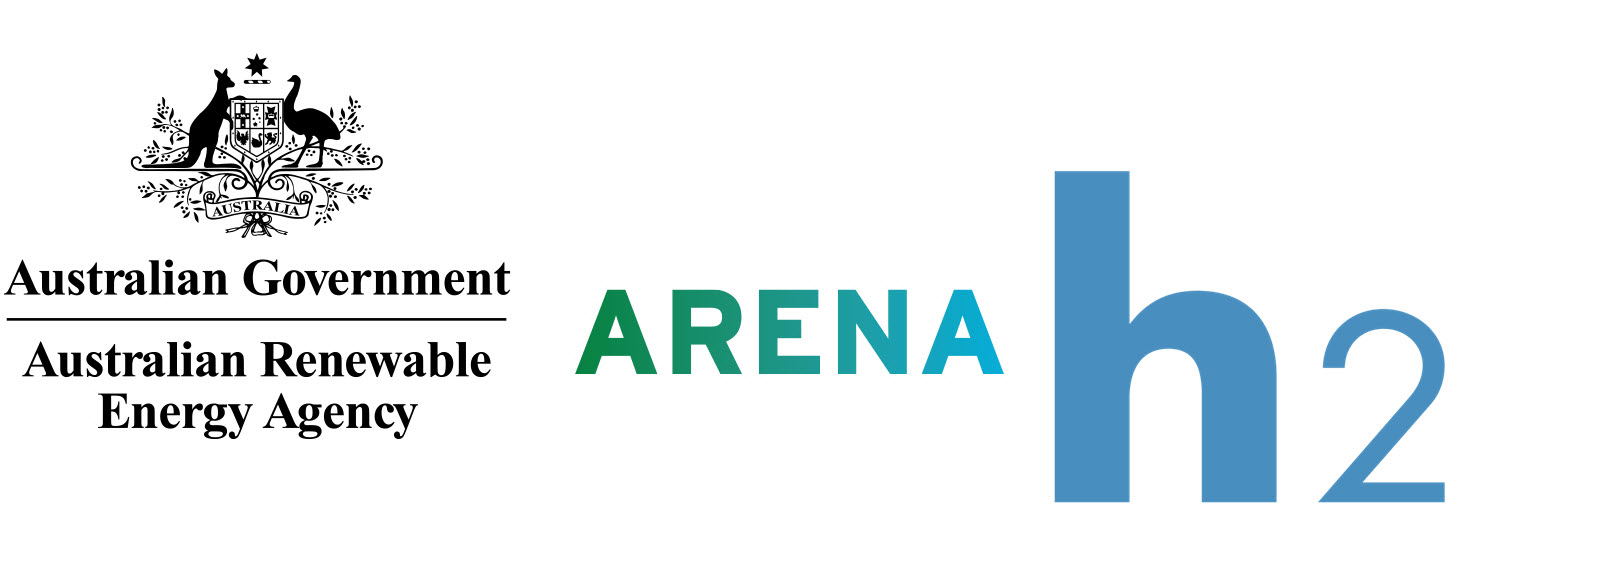 ARENA Hydrogen from BioGas